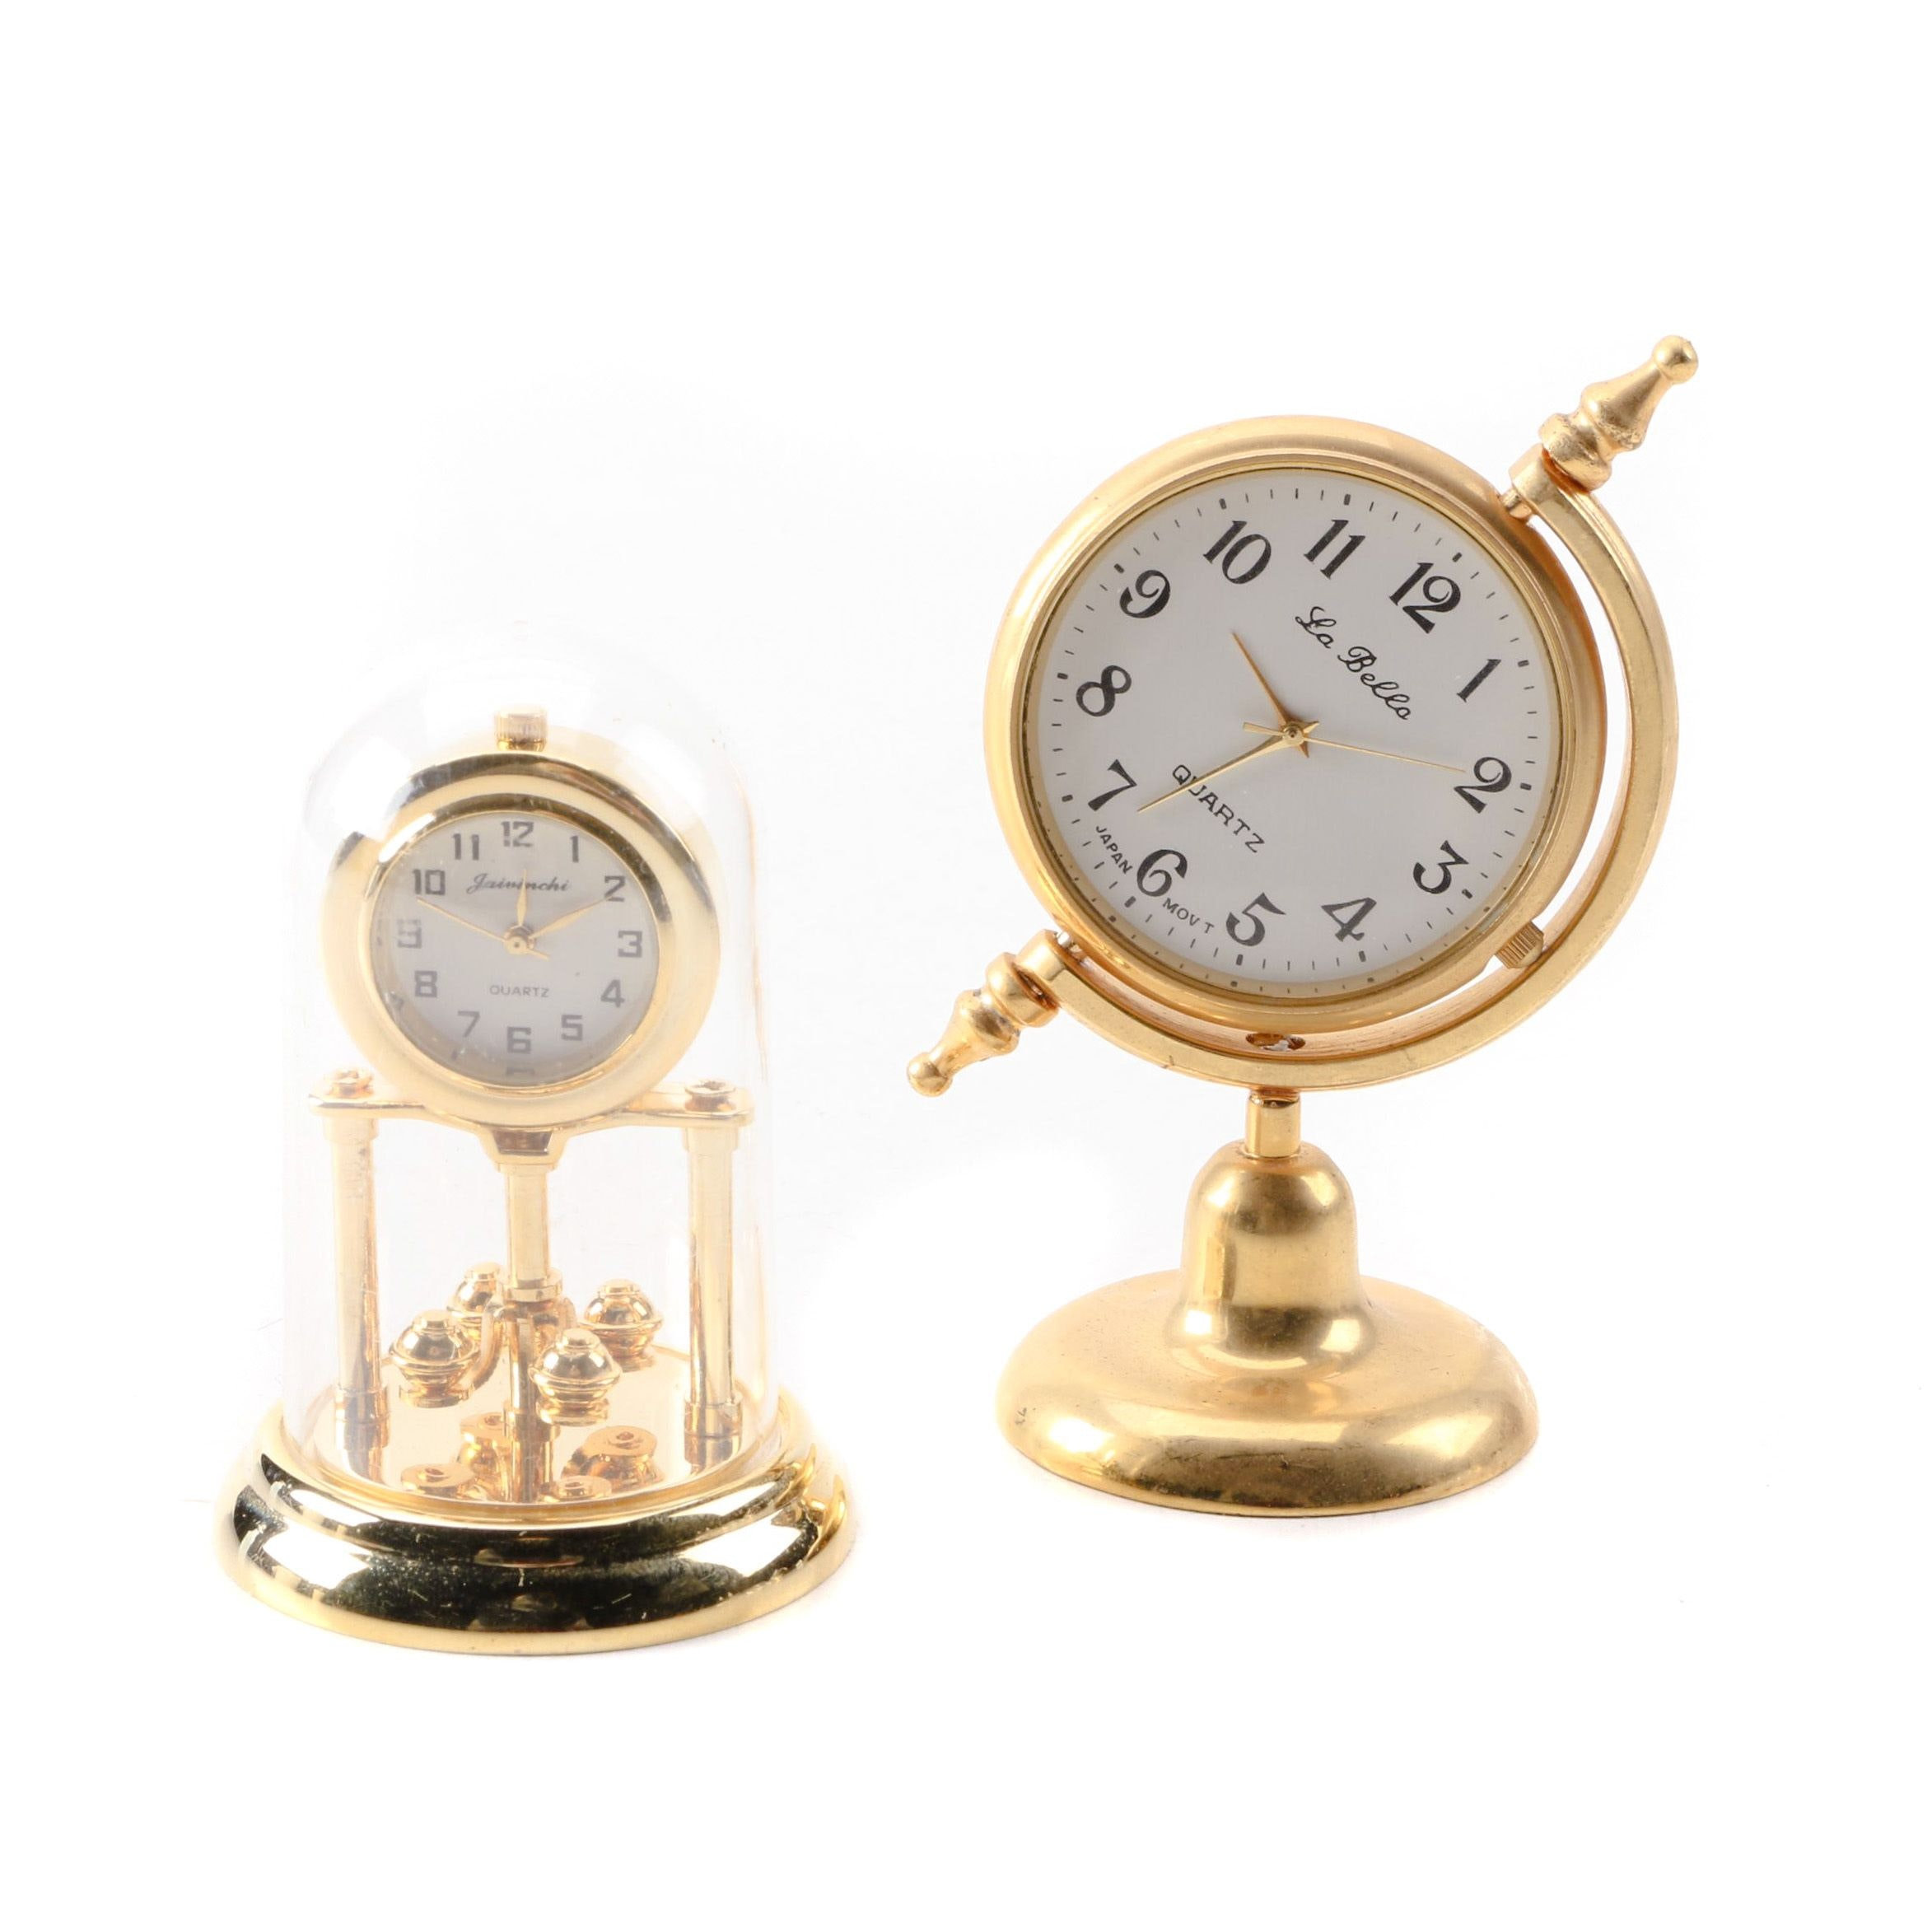 LoBello and Jaivinchi Small Brass Desk Clocks